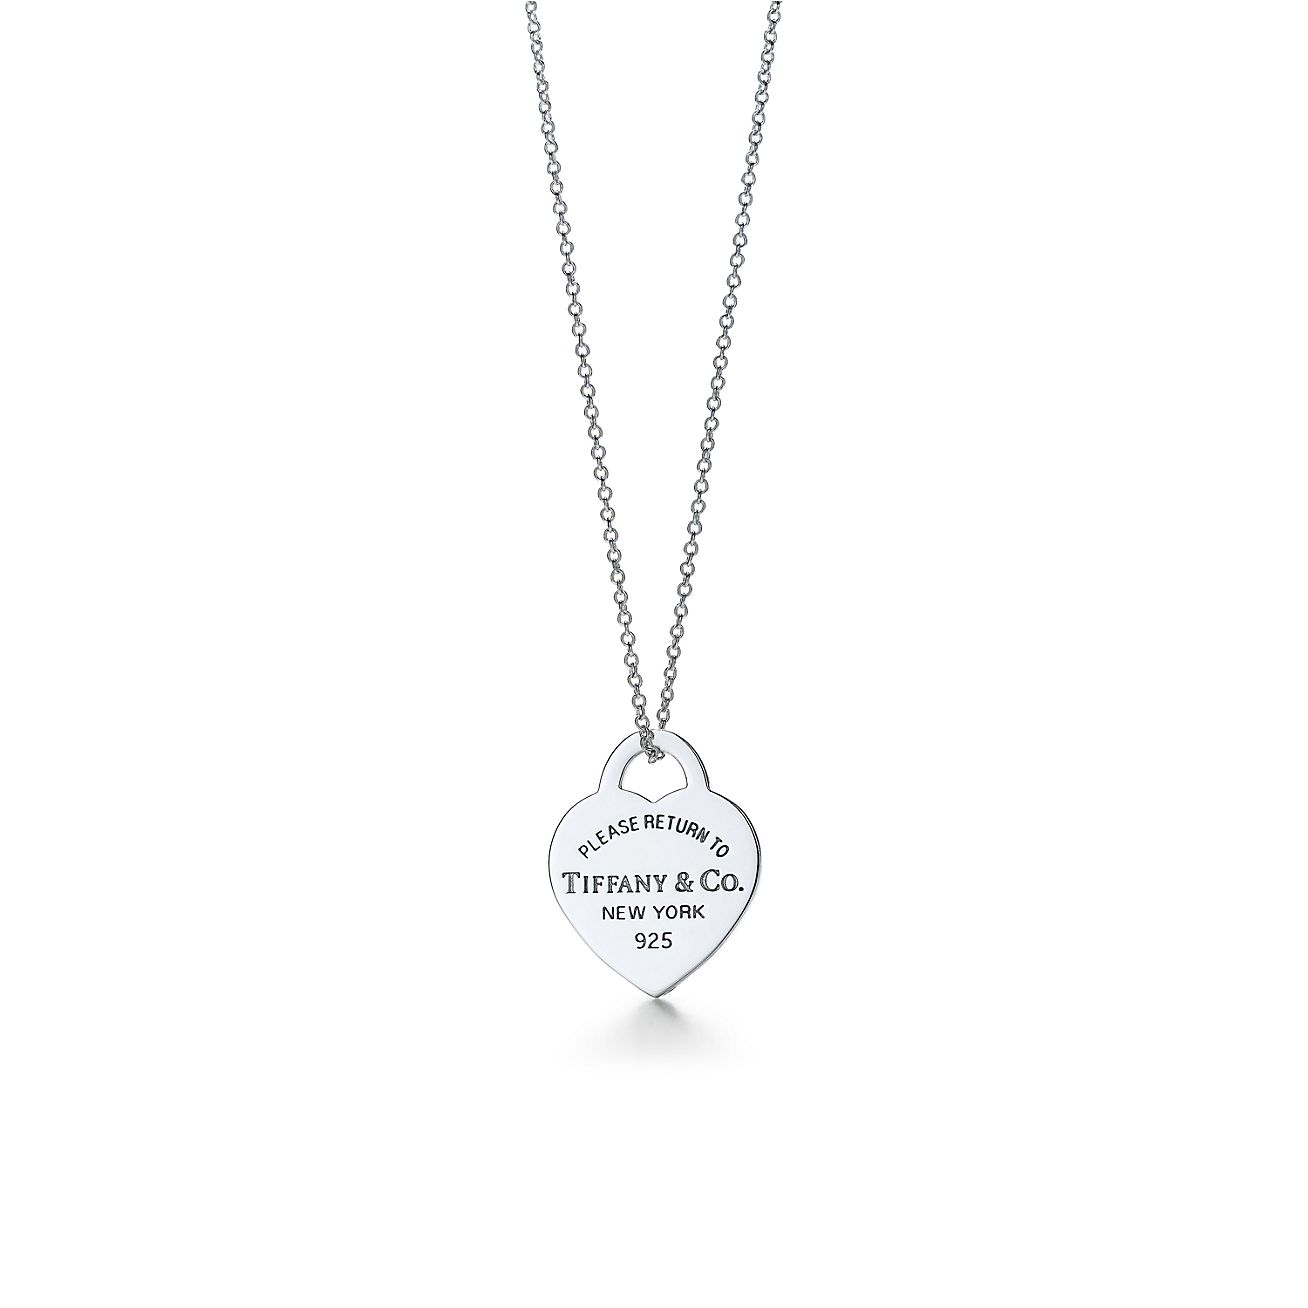 Jewelry Necklaces Pendants Return To Tiffany Heart Tag Pendant Grp01461 Tiffany & Co Clearance Sale